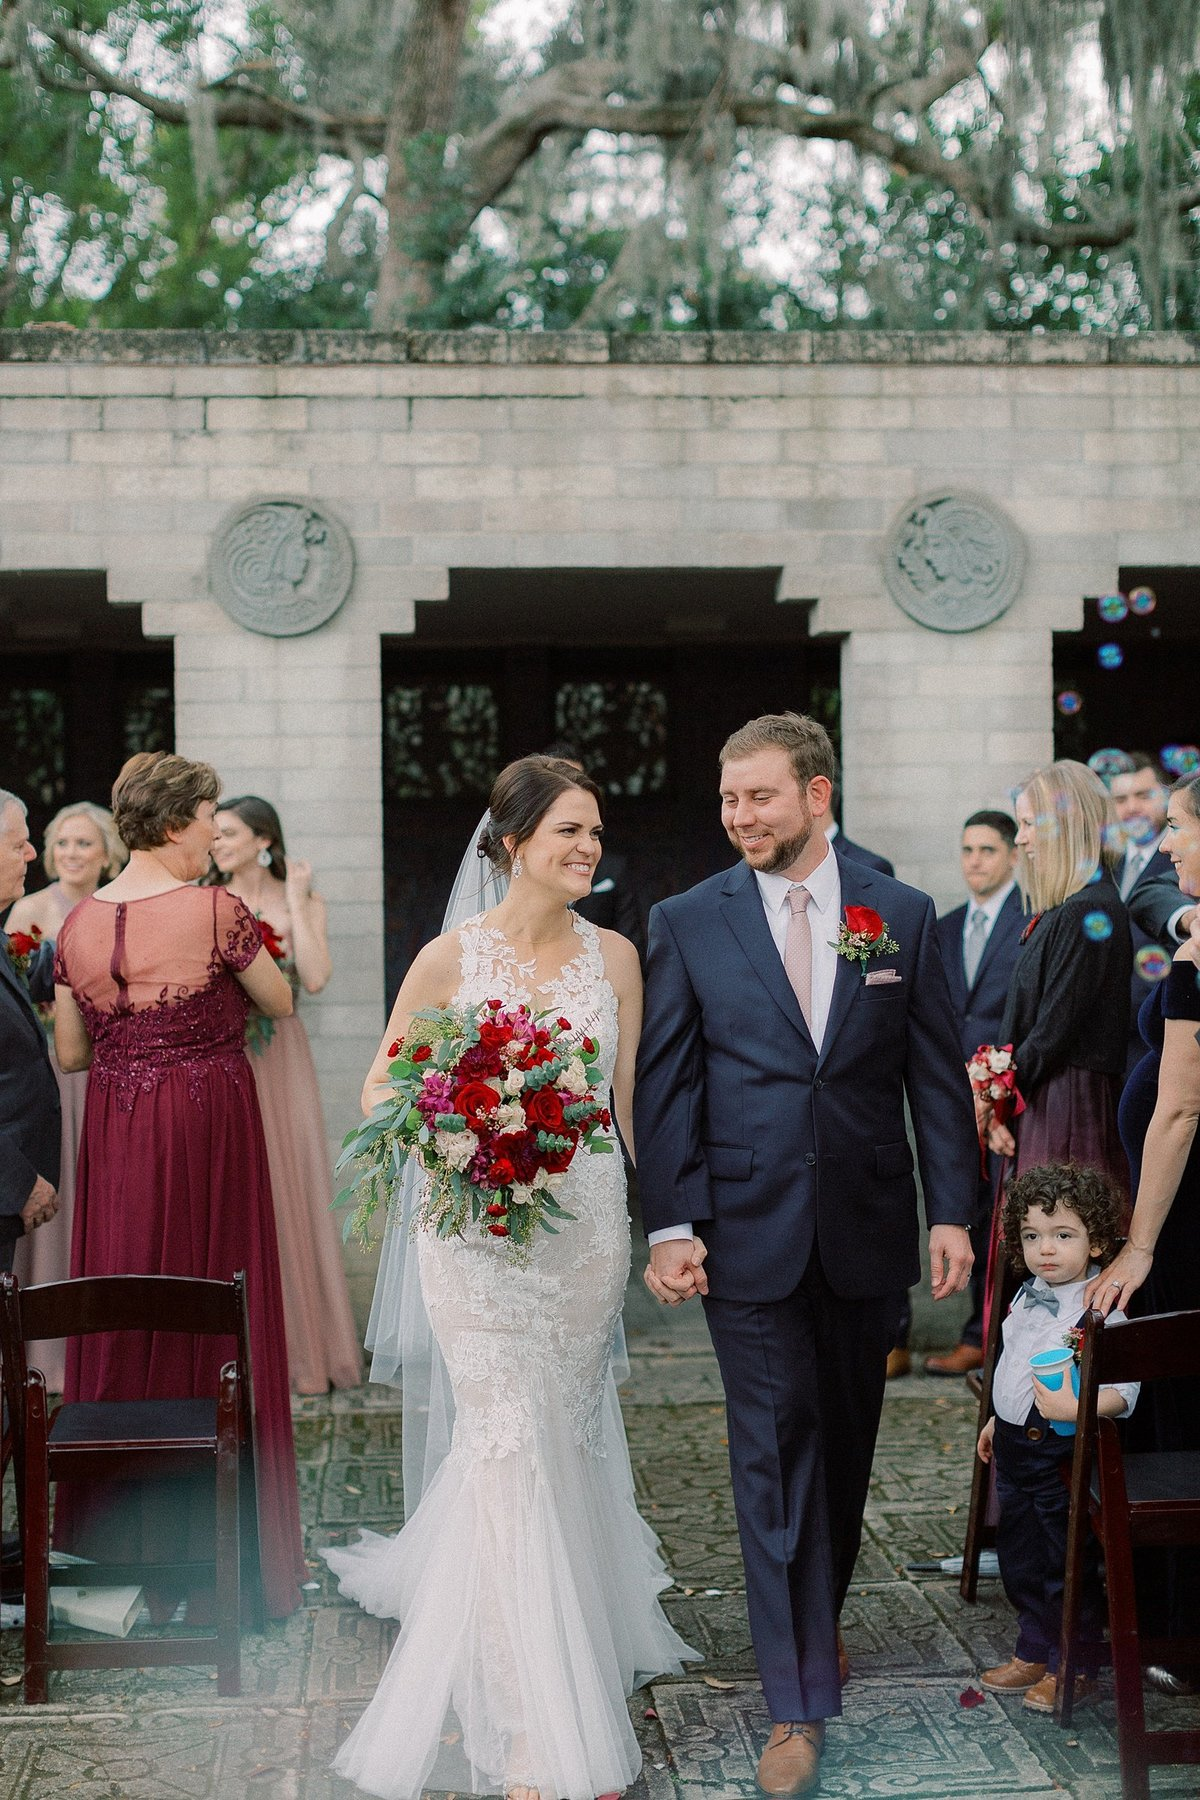 Sergi Wedding Maitland Art and History Museum Casie Marie Photography Orlando Photographer_0035